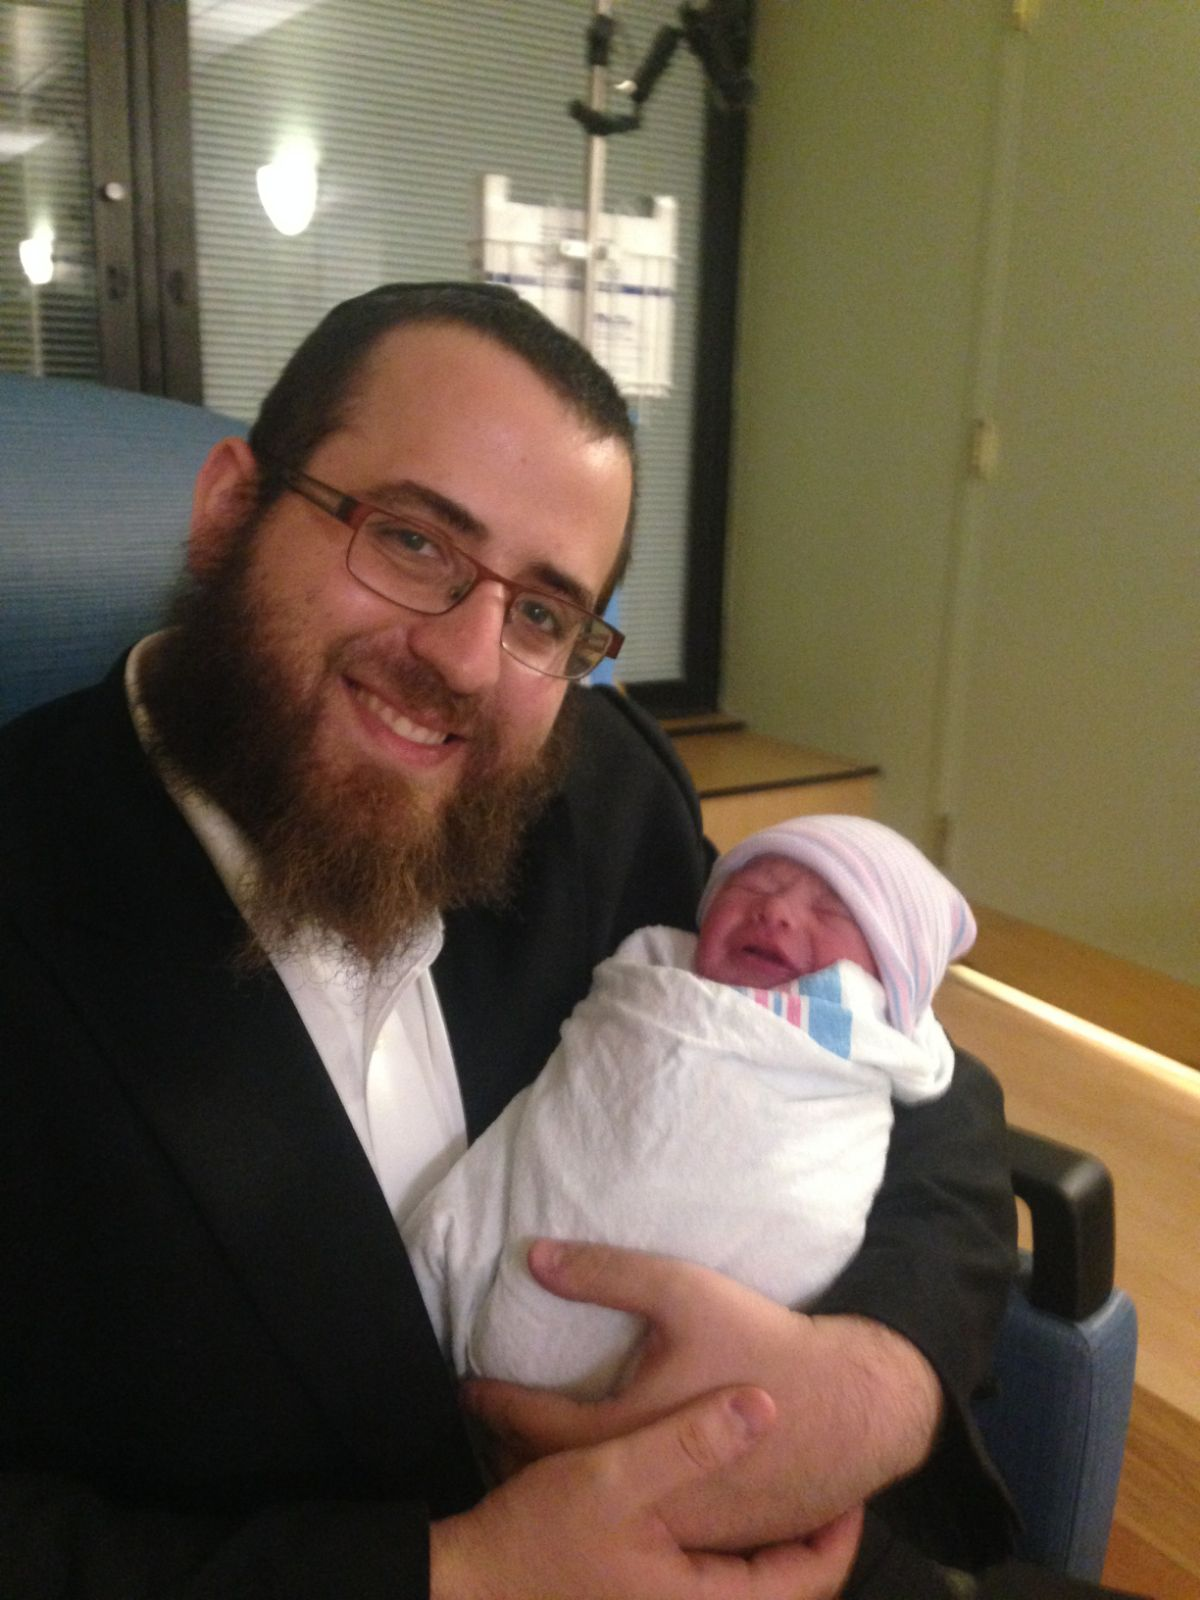 Mendel at the birth of his first son